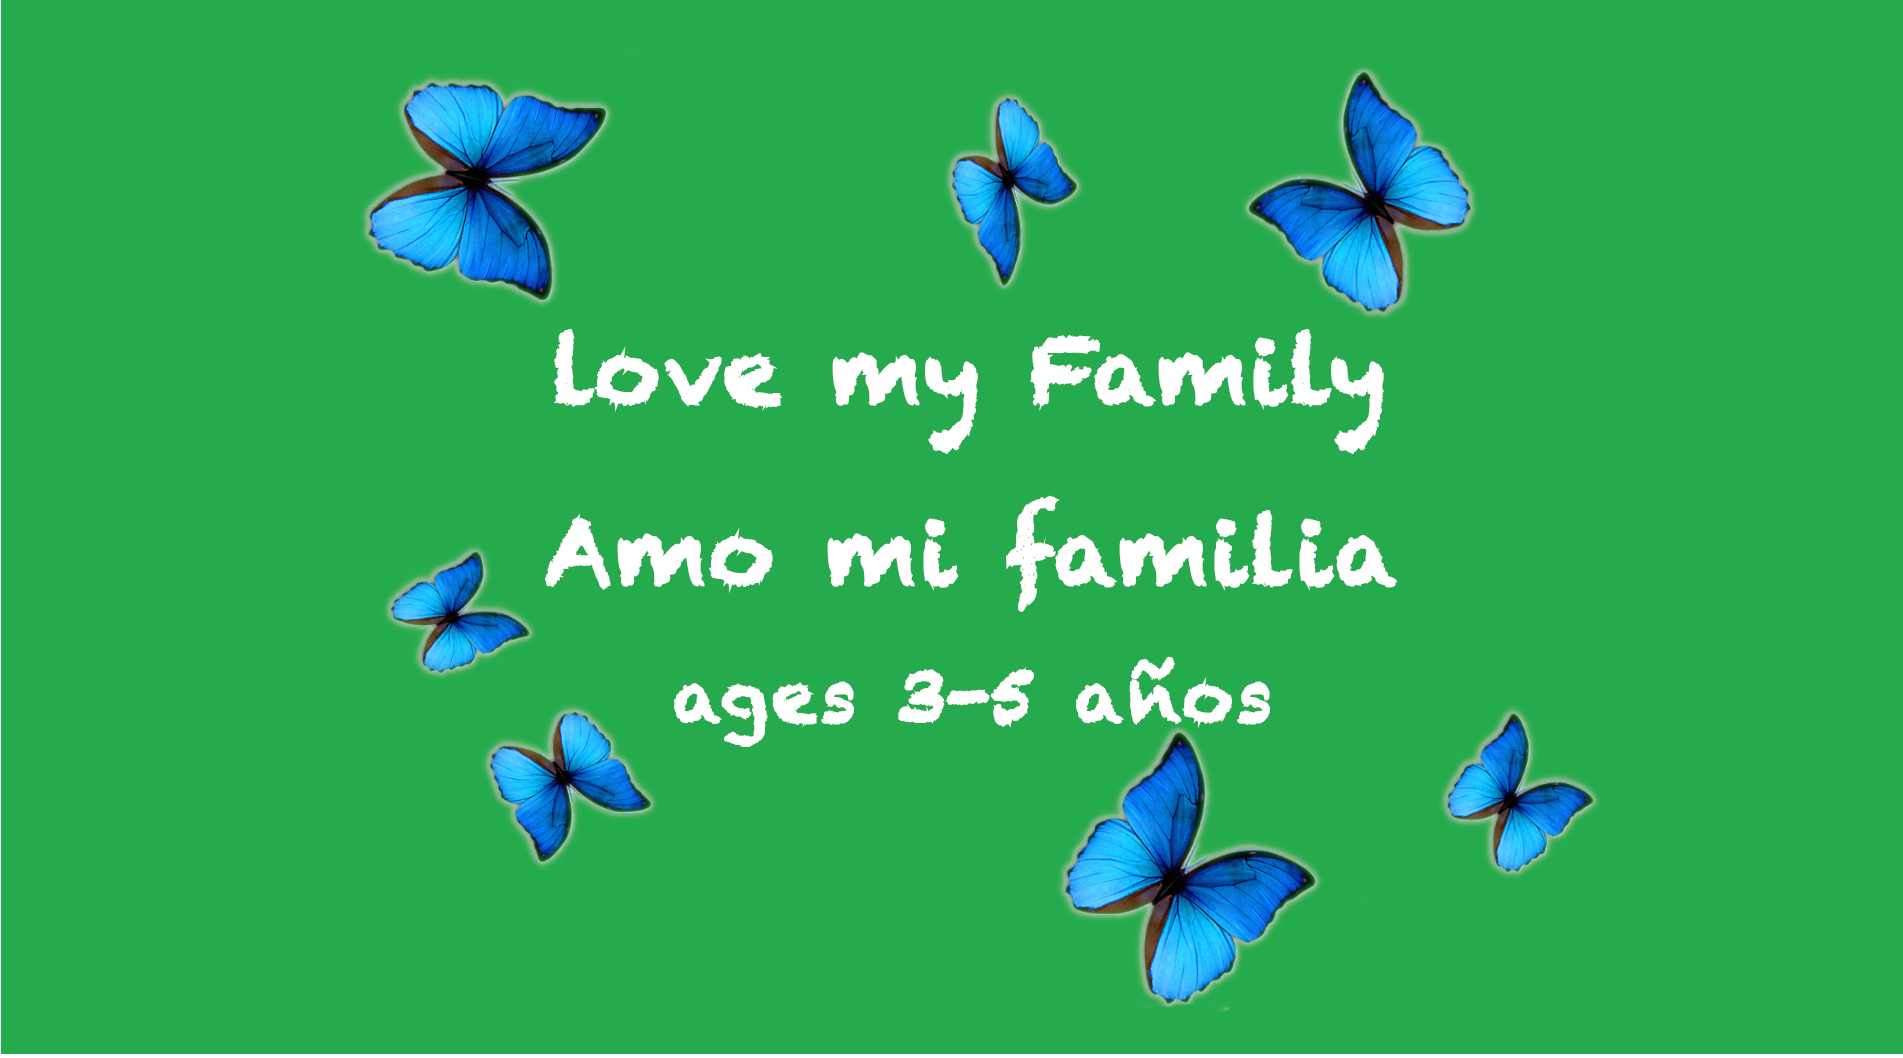 Weekly Themes #4: Love My Family for 3-5 years old